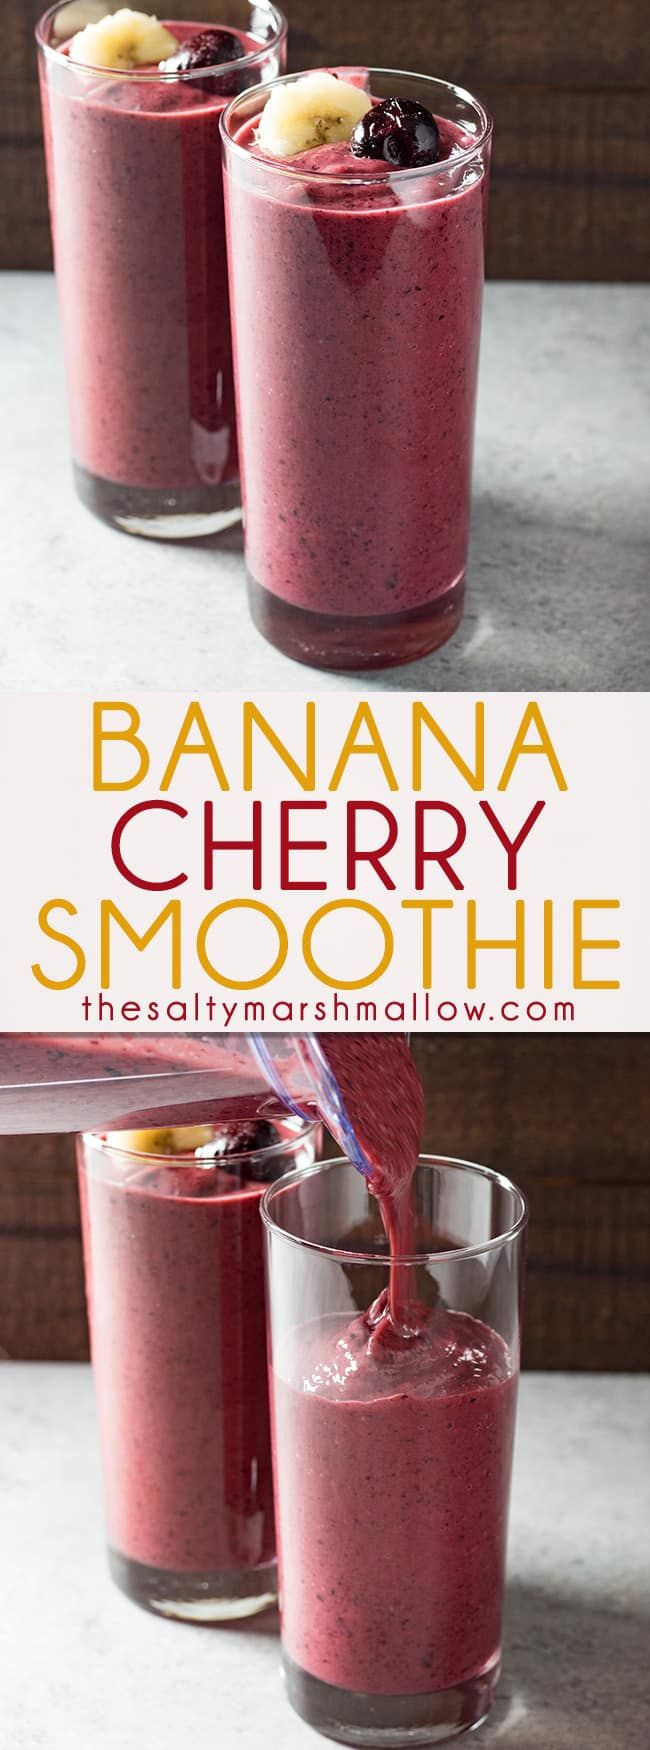 Banana Cherry Smoothie - A favorite healthy smoothie recipe that's perfect for breakfast, lunch, or just a healthy snack.  My kids love to make this easy fruit smoothie with me!